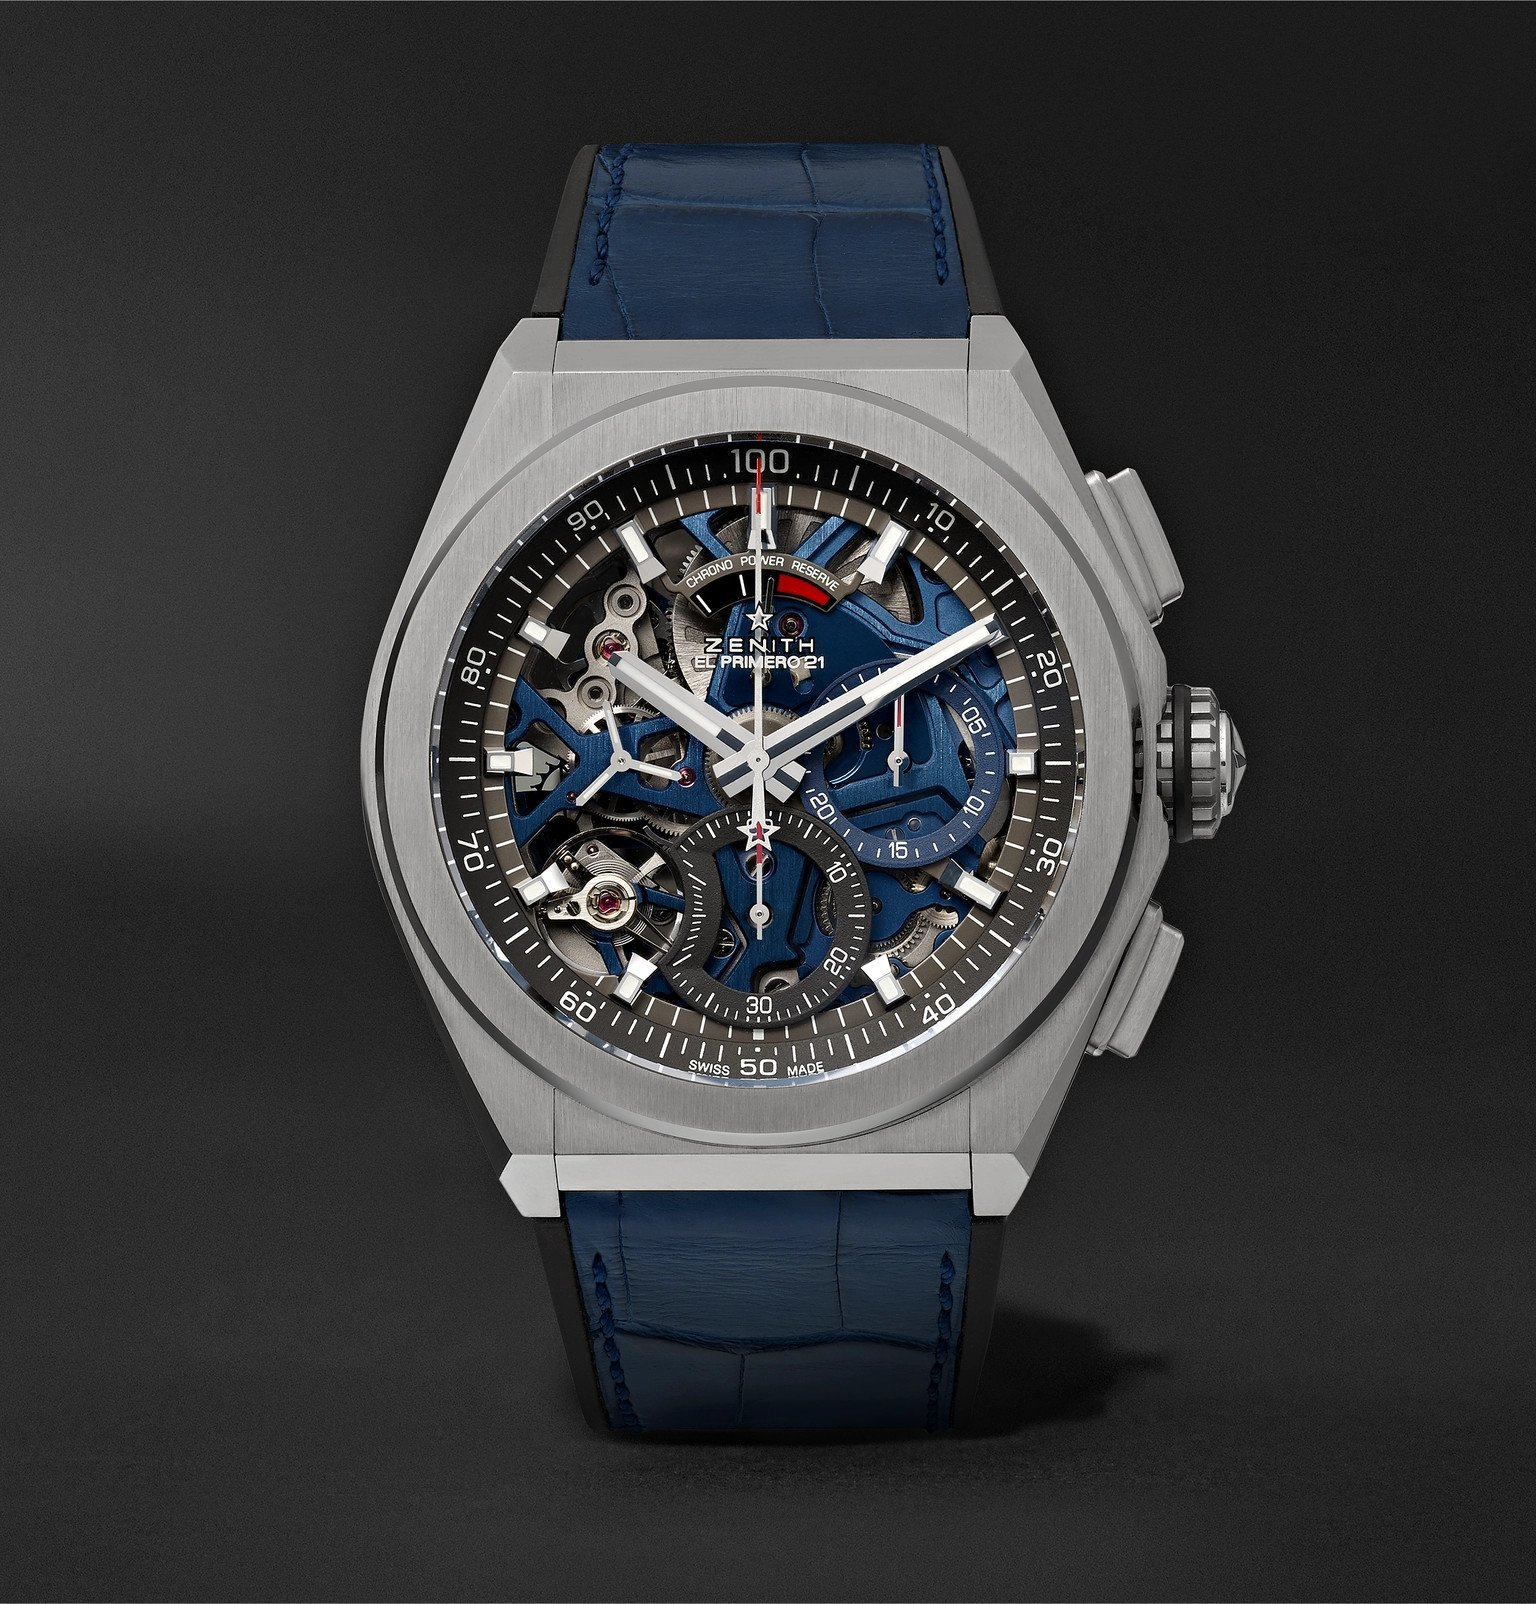 Photo: Zenith - Defy El Primero 21 Chronograph 44mm Brushed-Titanium, Alligator and Rubber Watch, Ref. No. 95.9002.9004/78.R584 - Blue